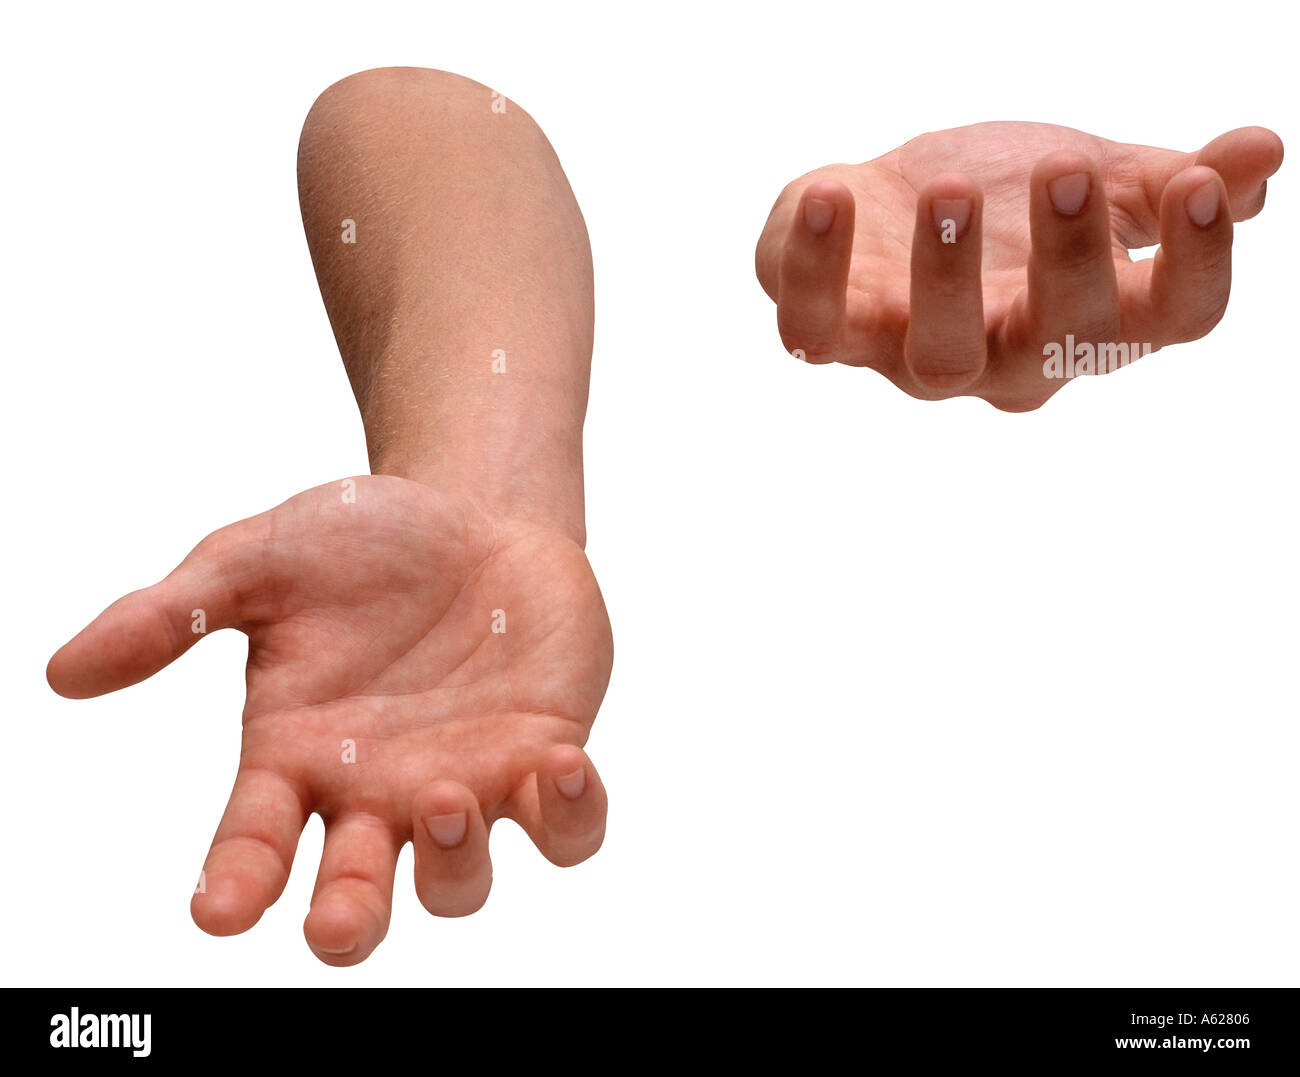 Two hands juggle virtual objects - Stock Image